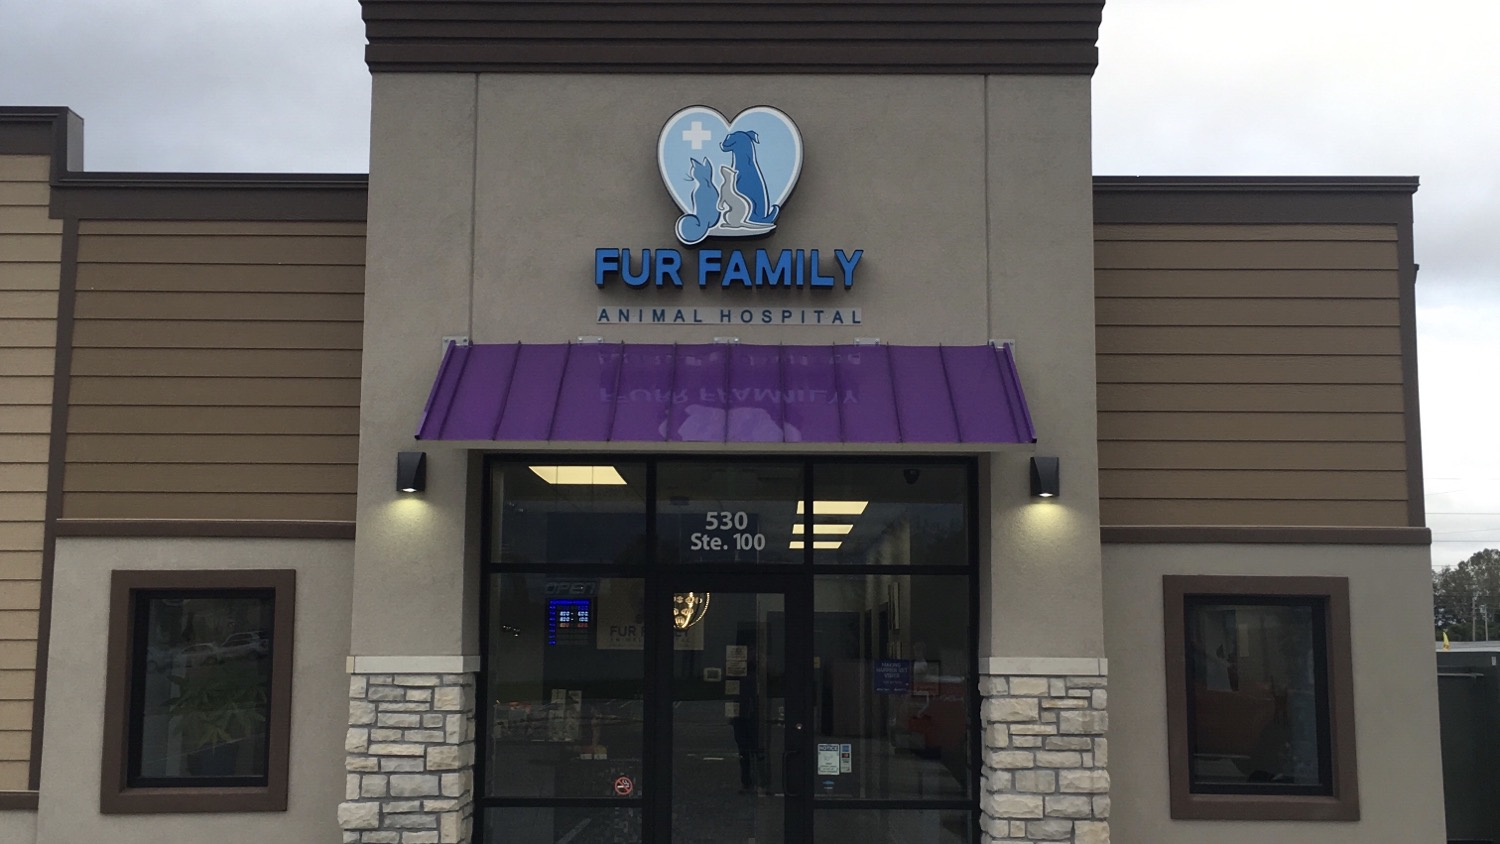 Fur Family Frontage